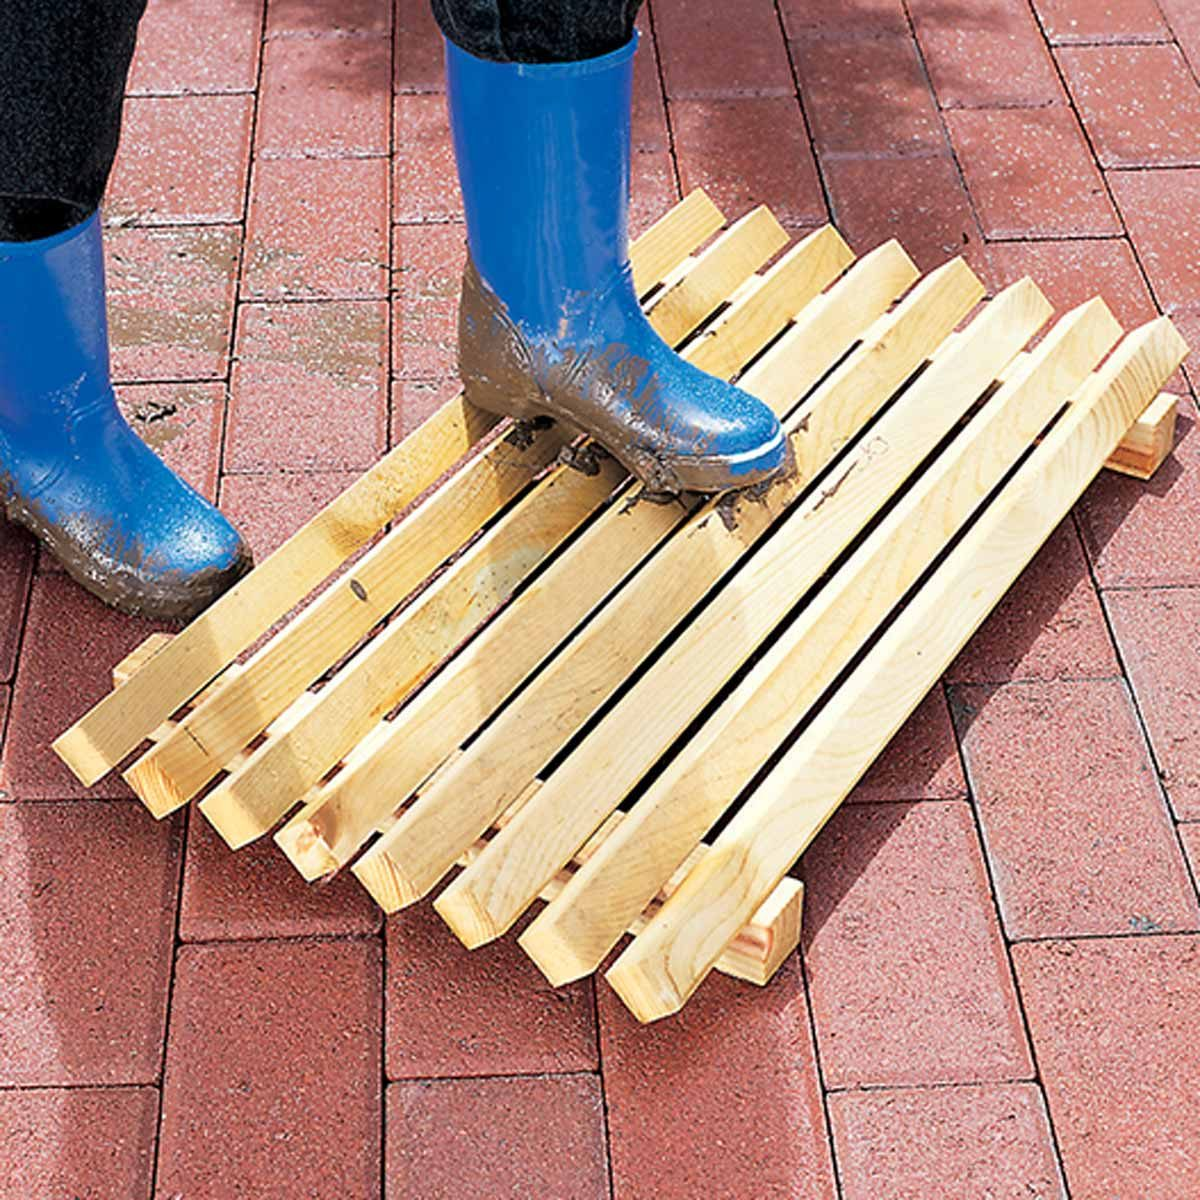 19 Surprisingly Easy Woodworking Projects For Beginners The Family